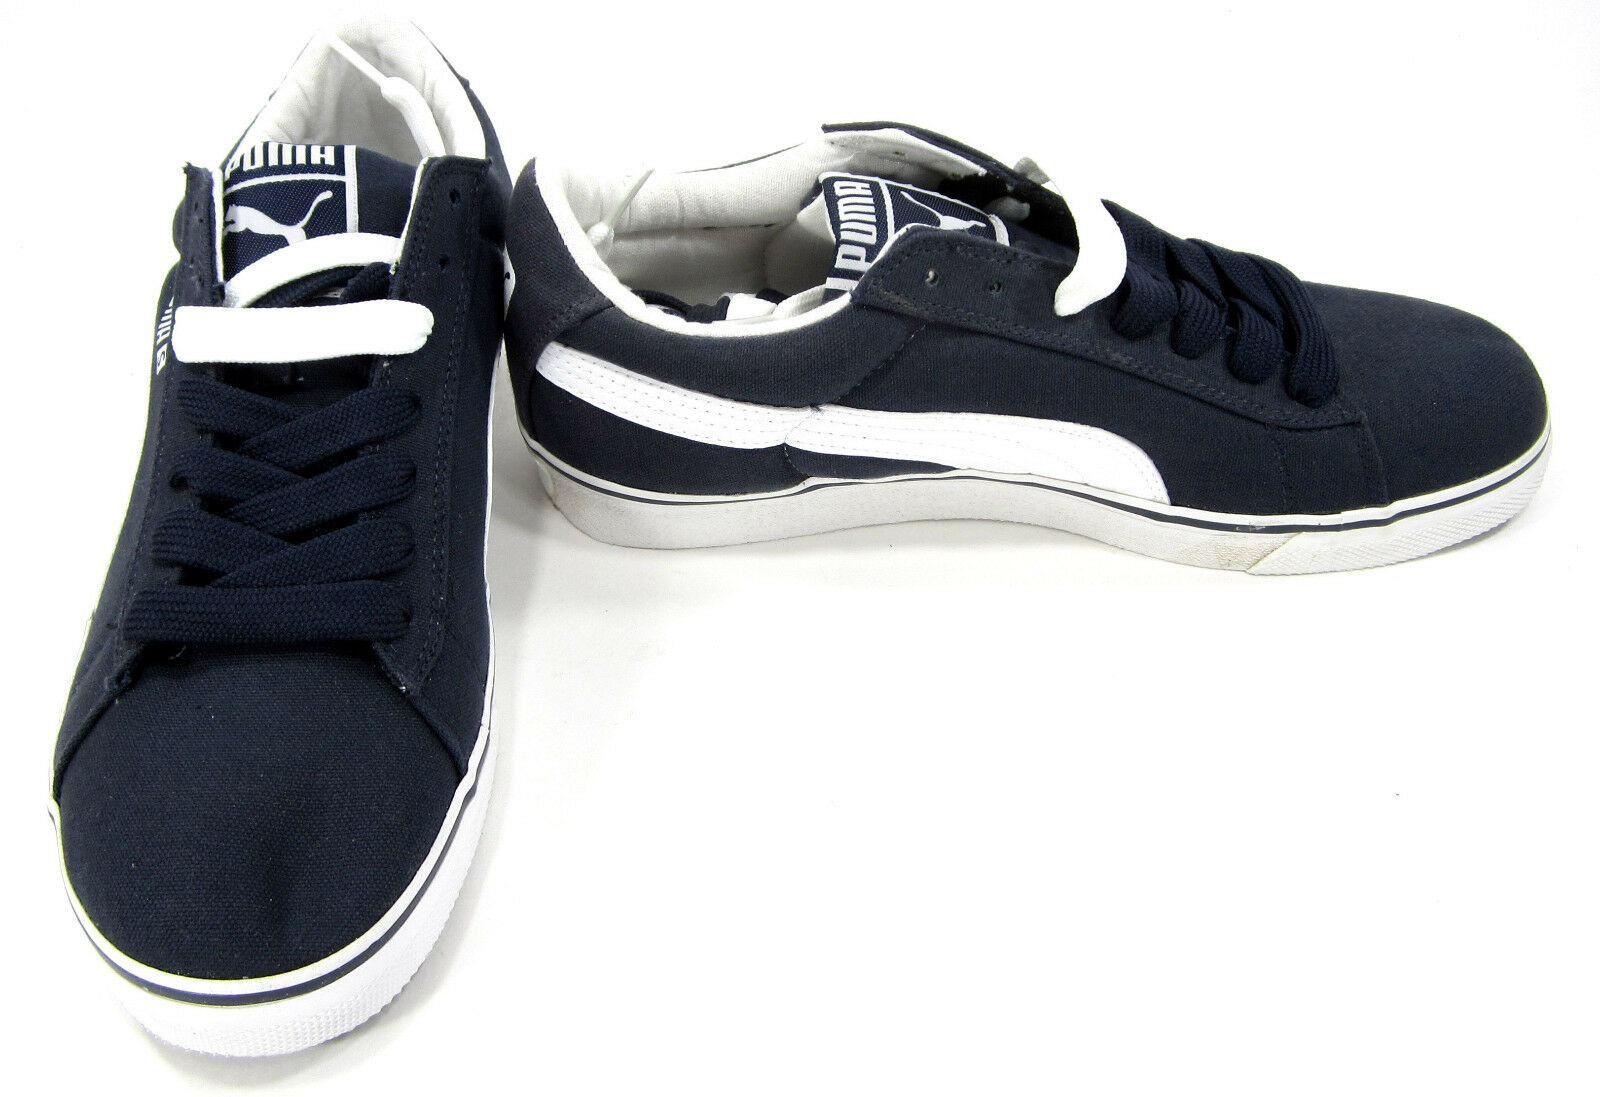 Puma Shoes S Vulcanized Canvas Navy Blue Sneakers Comfortable